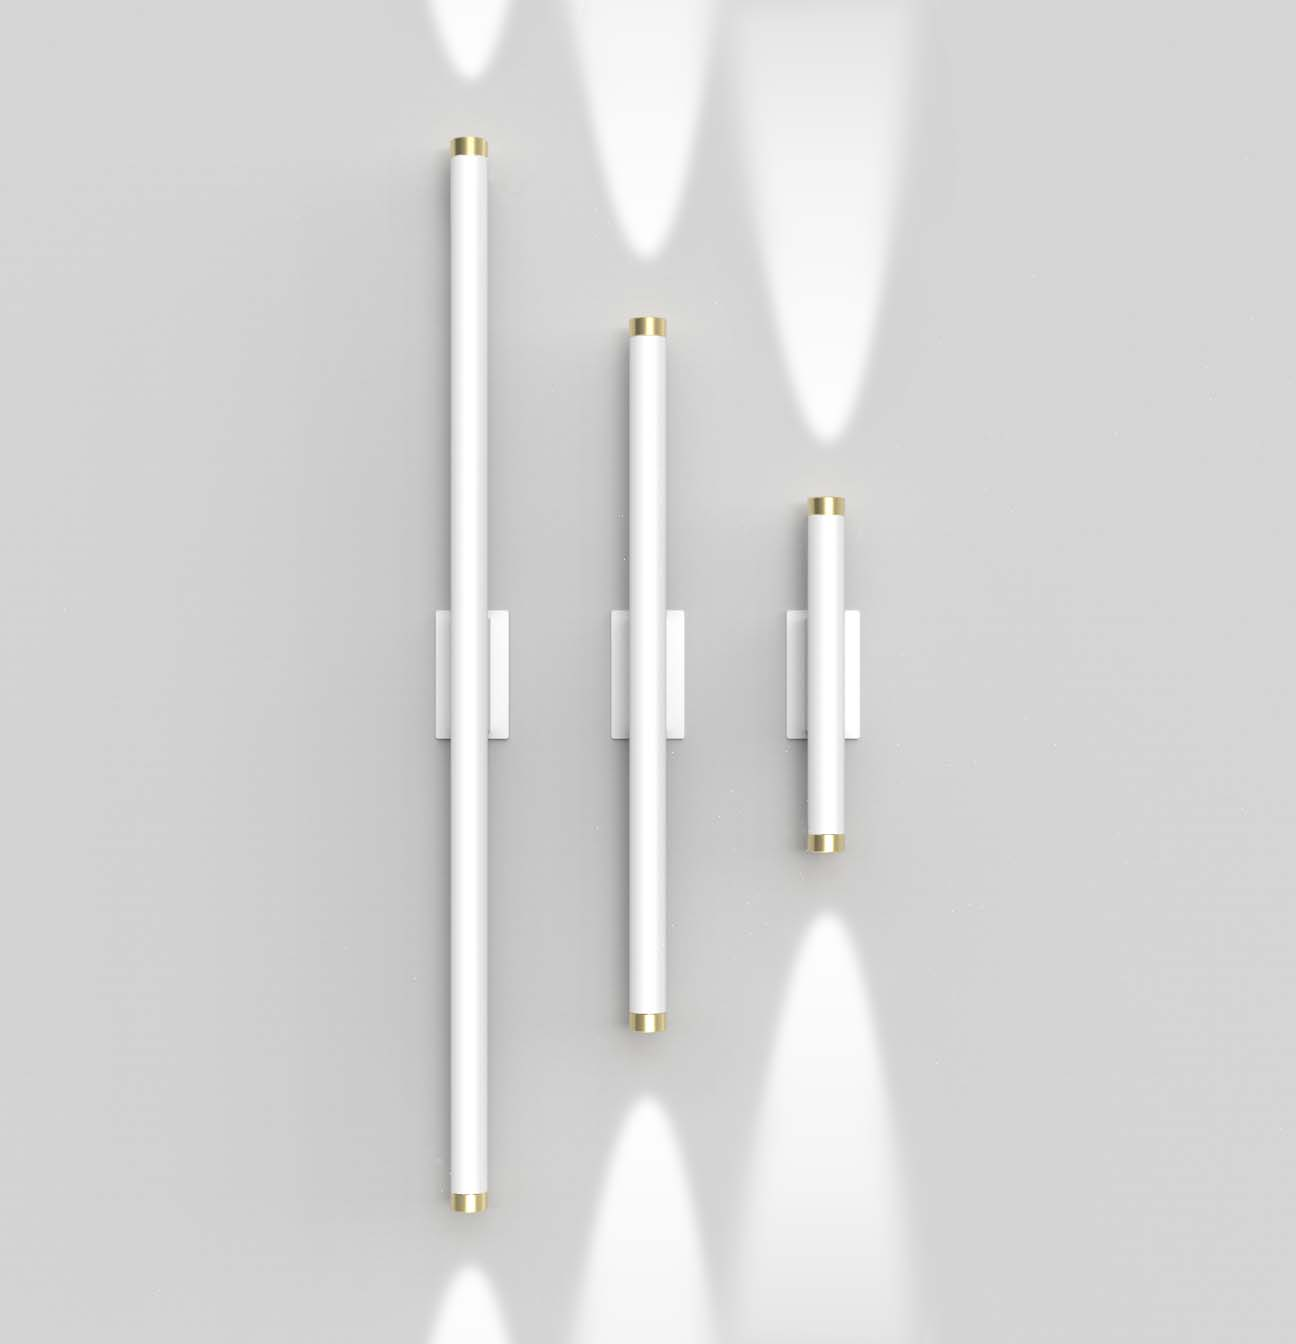 Scope_Sconce_Prouduct_Page_Image_07